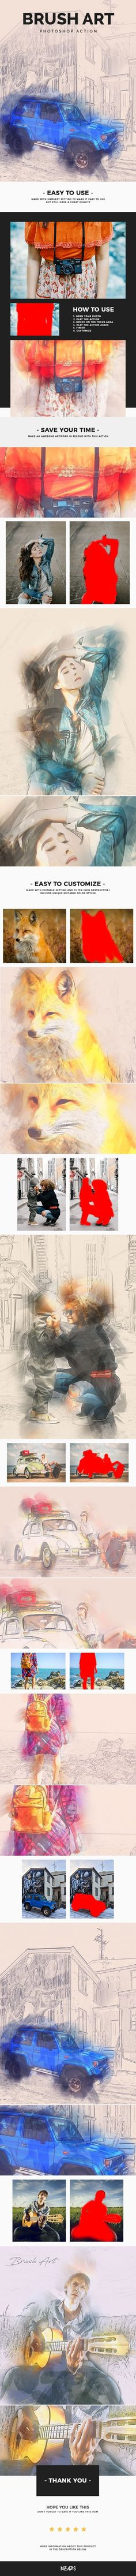 Brush Art Photoshop Action - Photo Effects Actions